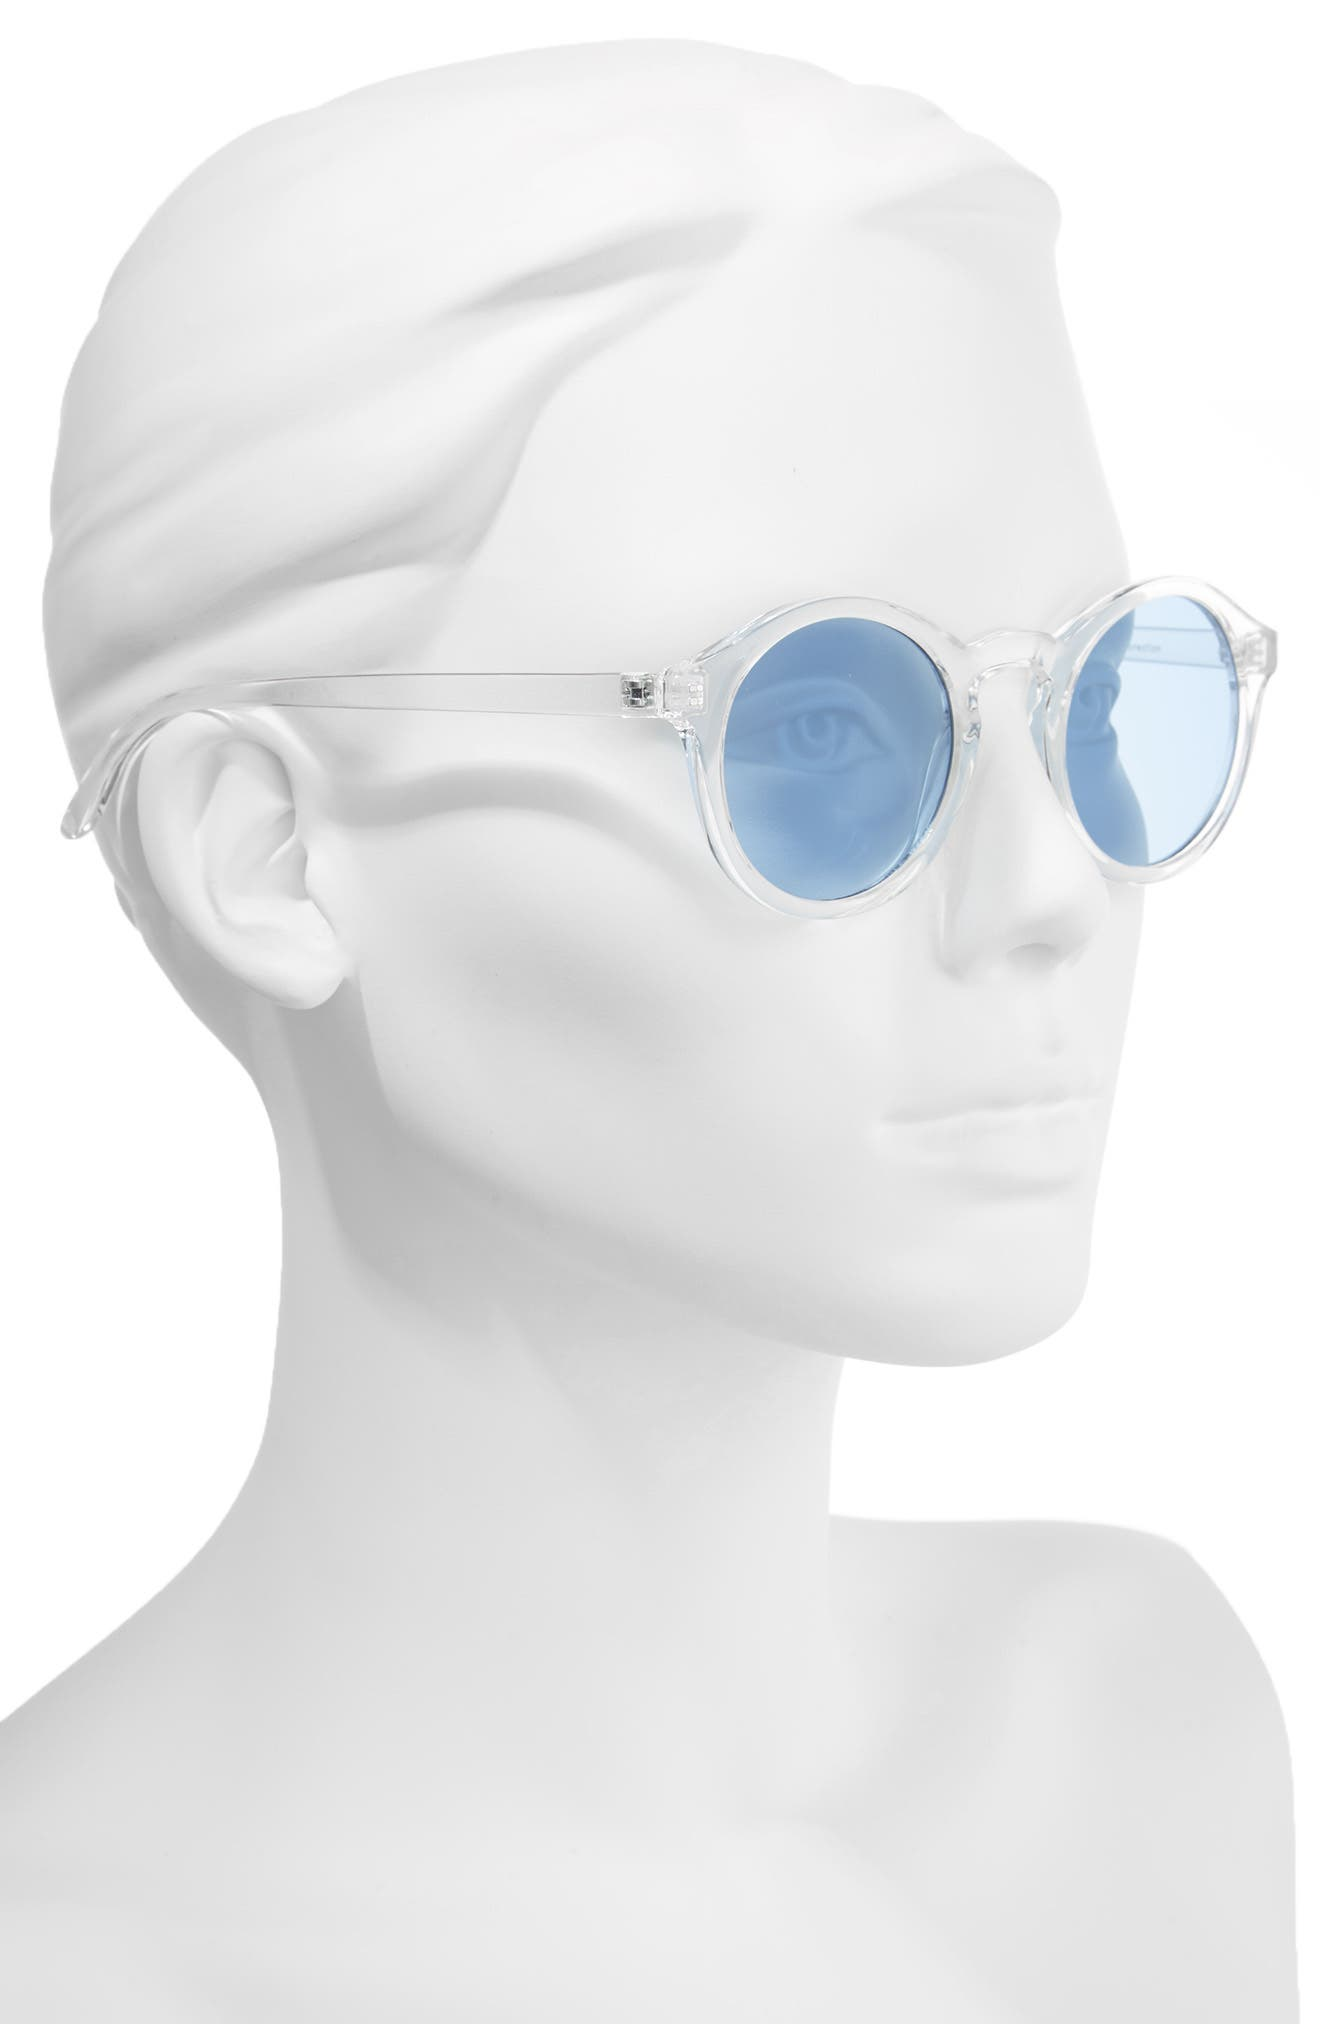 45mm Clear Plastic Small Round Sunglasses,                             Alternate thumbnail 2, color,                             100